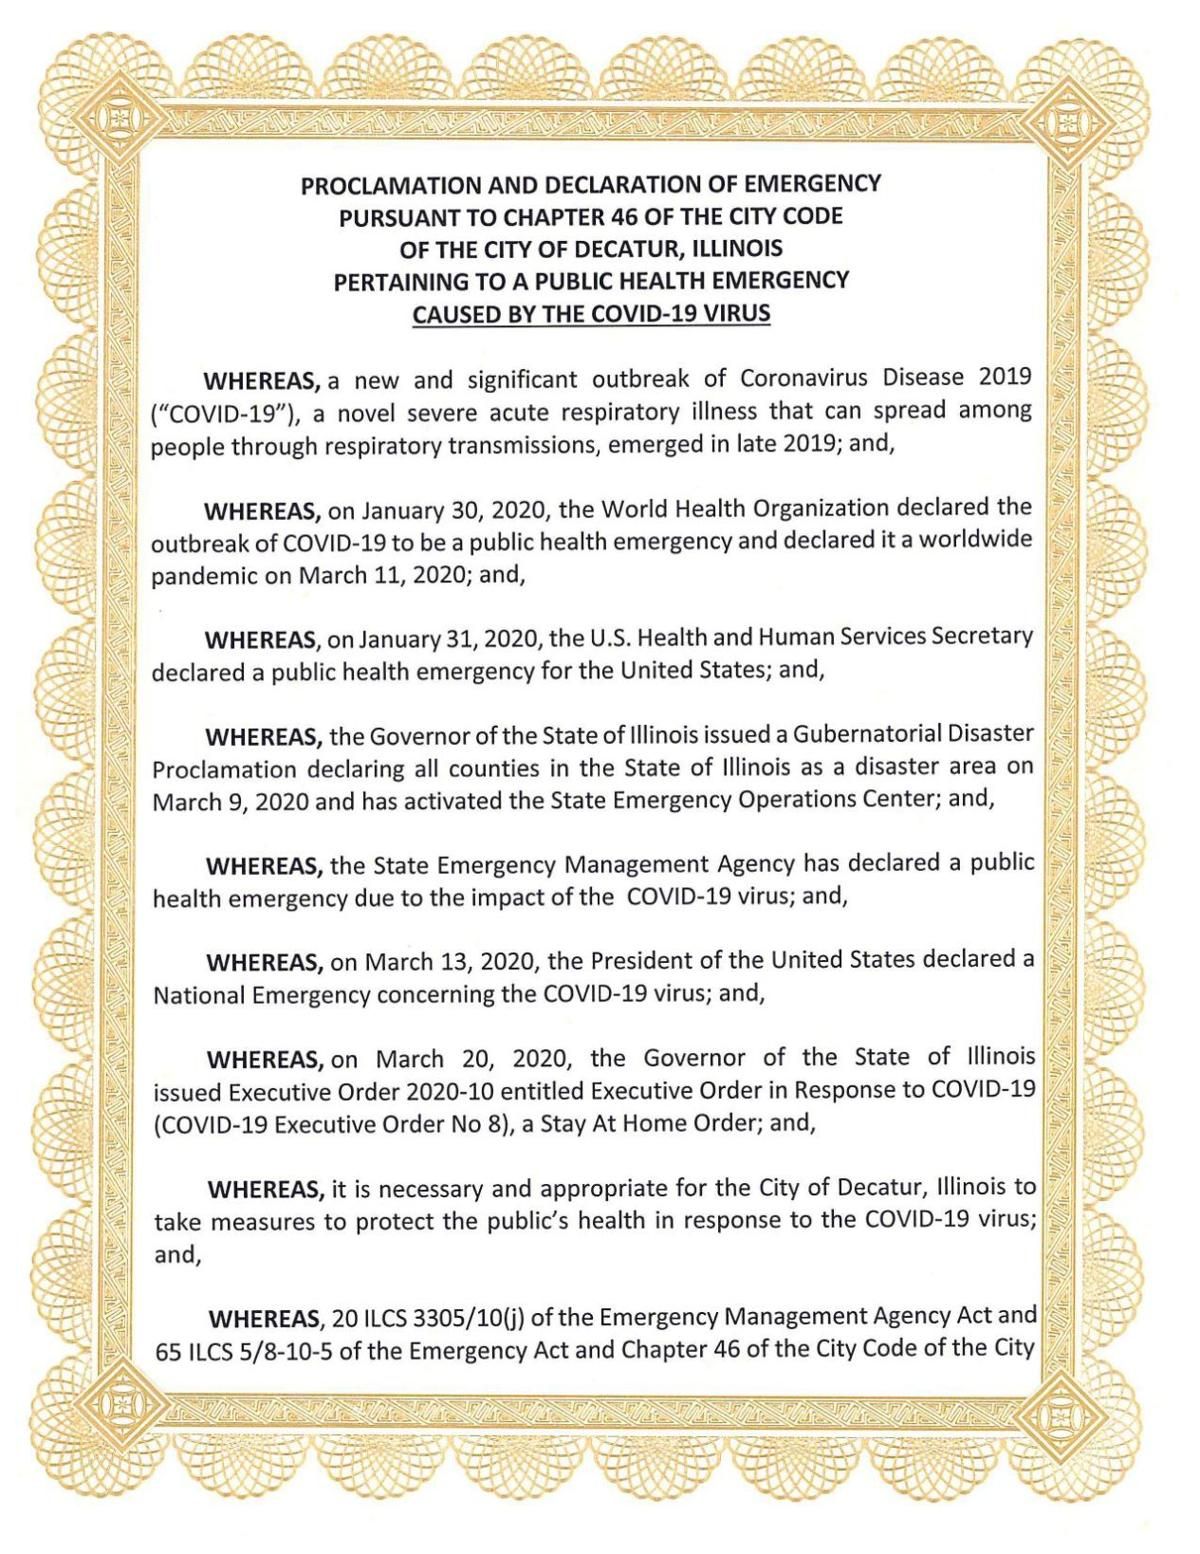 Decatur emergency proclamation